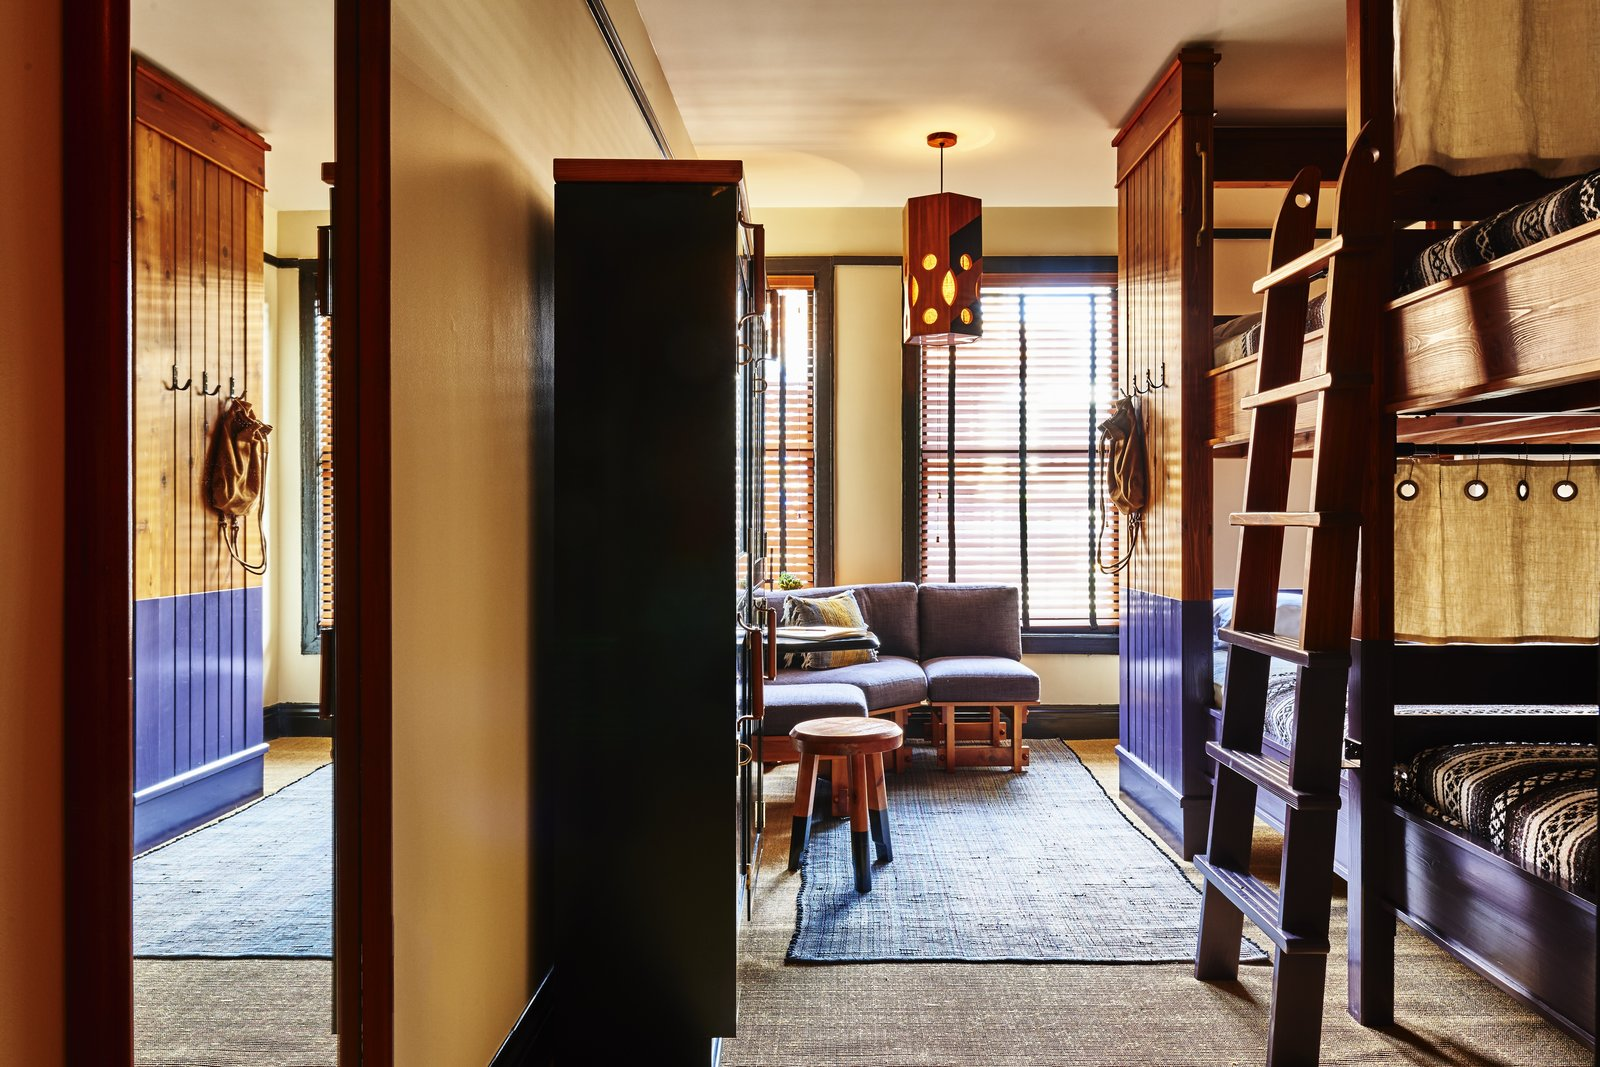 Bedroom The shared rooms, the most affordable and popular option, are inventive in decor with bunk beds, draperies, and accents of purple.  Photo 9 of 10 in A 1920s Office Building Is Revamped as a Craftsman-Inspired Hotel in Los Angeles